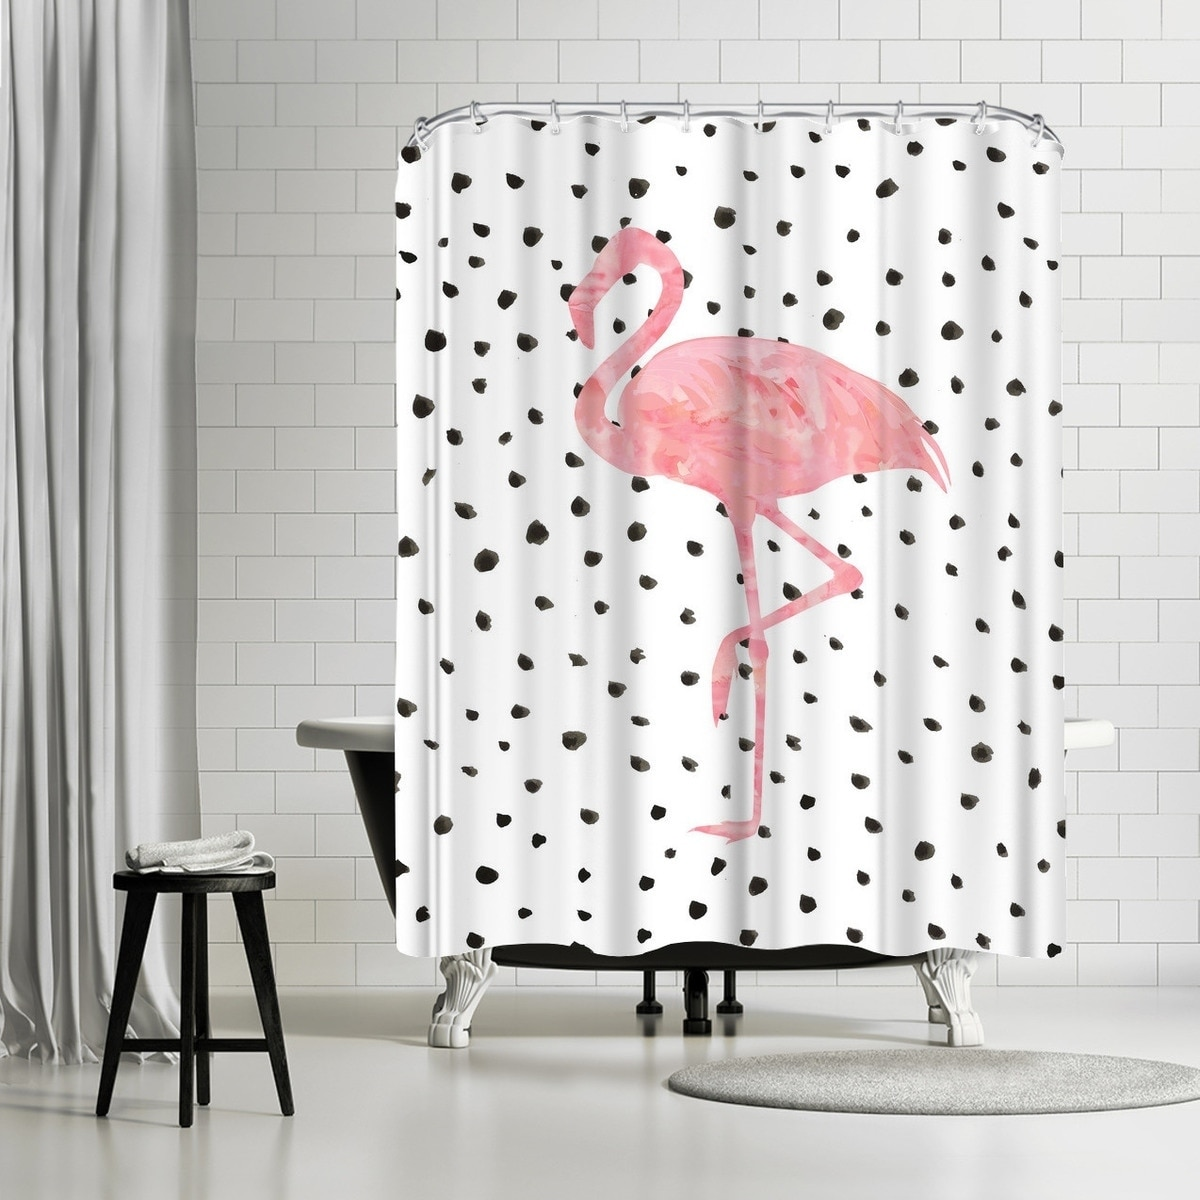 Shop Americanflat Pink Flamingo On Polka Dots Shower Curtain Overstock 21501853